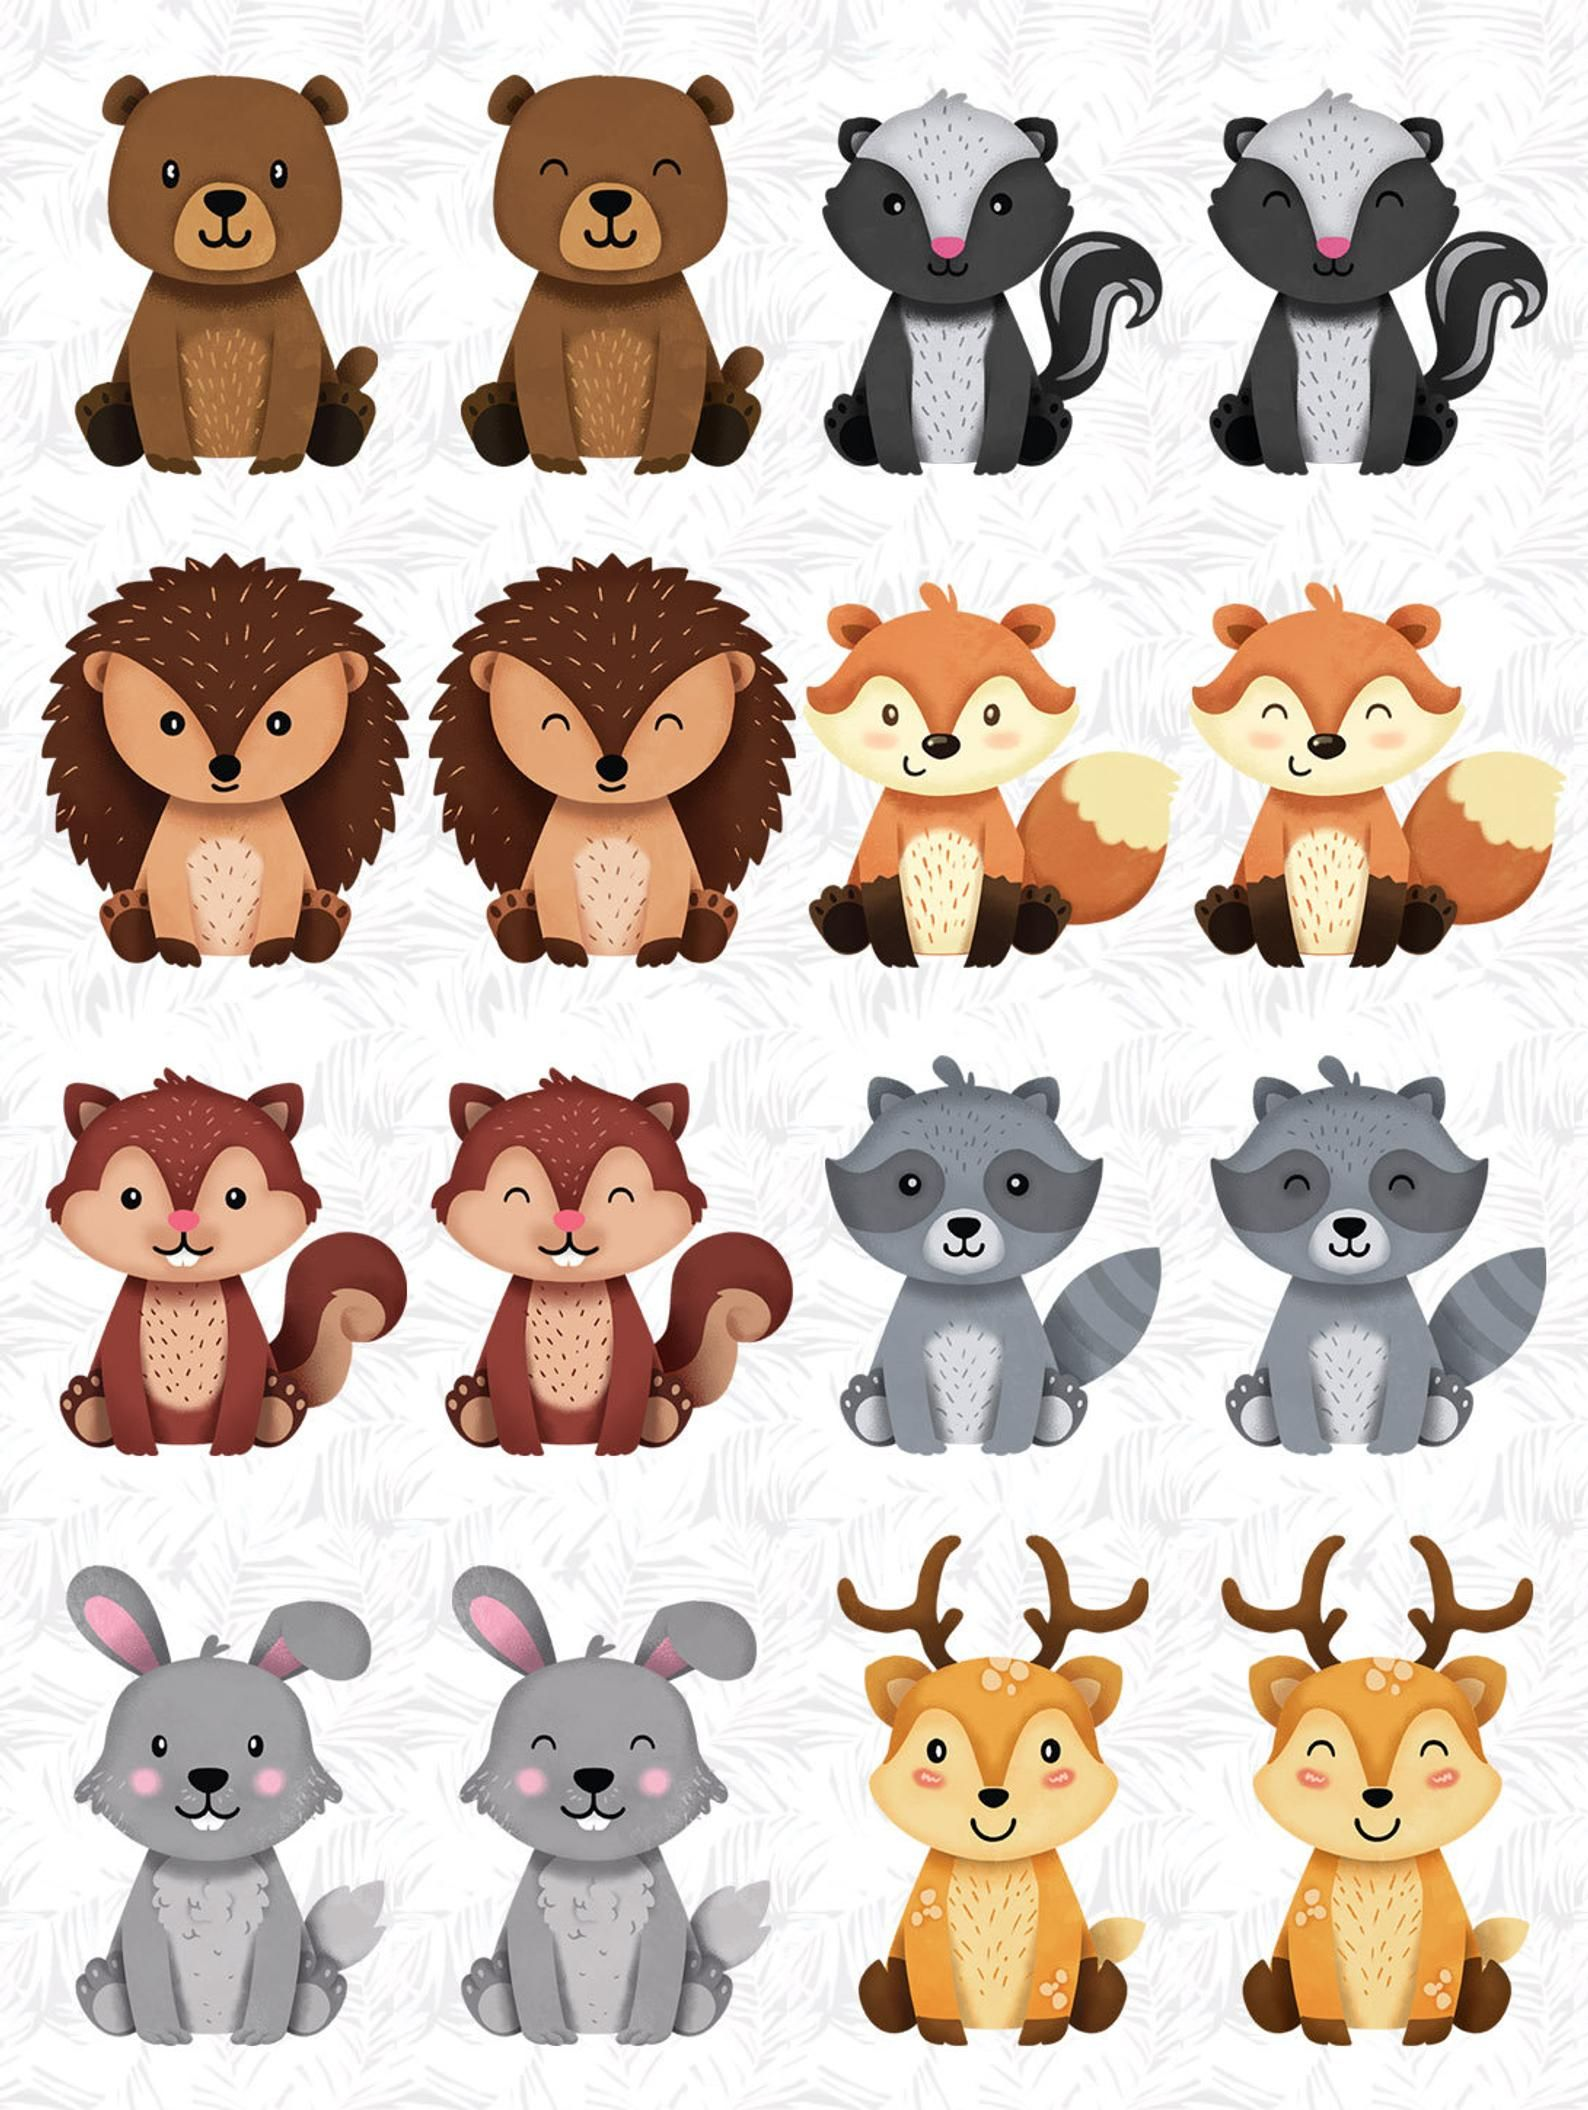 Woodland Animals Clipart Raccoon Forest Friends Sticker Animal Buddies Friendly Animal Woodland Baby Shower Woodland Animals Forest Friends Woodland Clipart